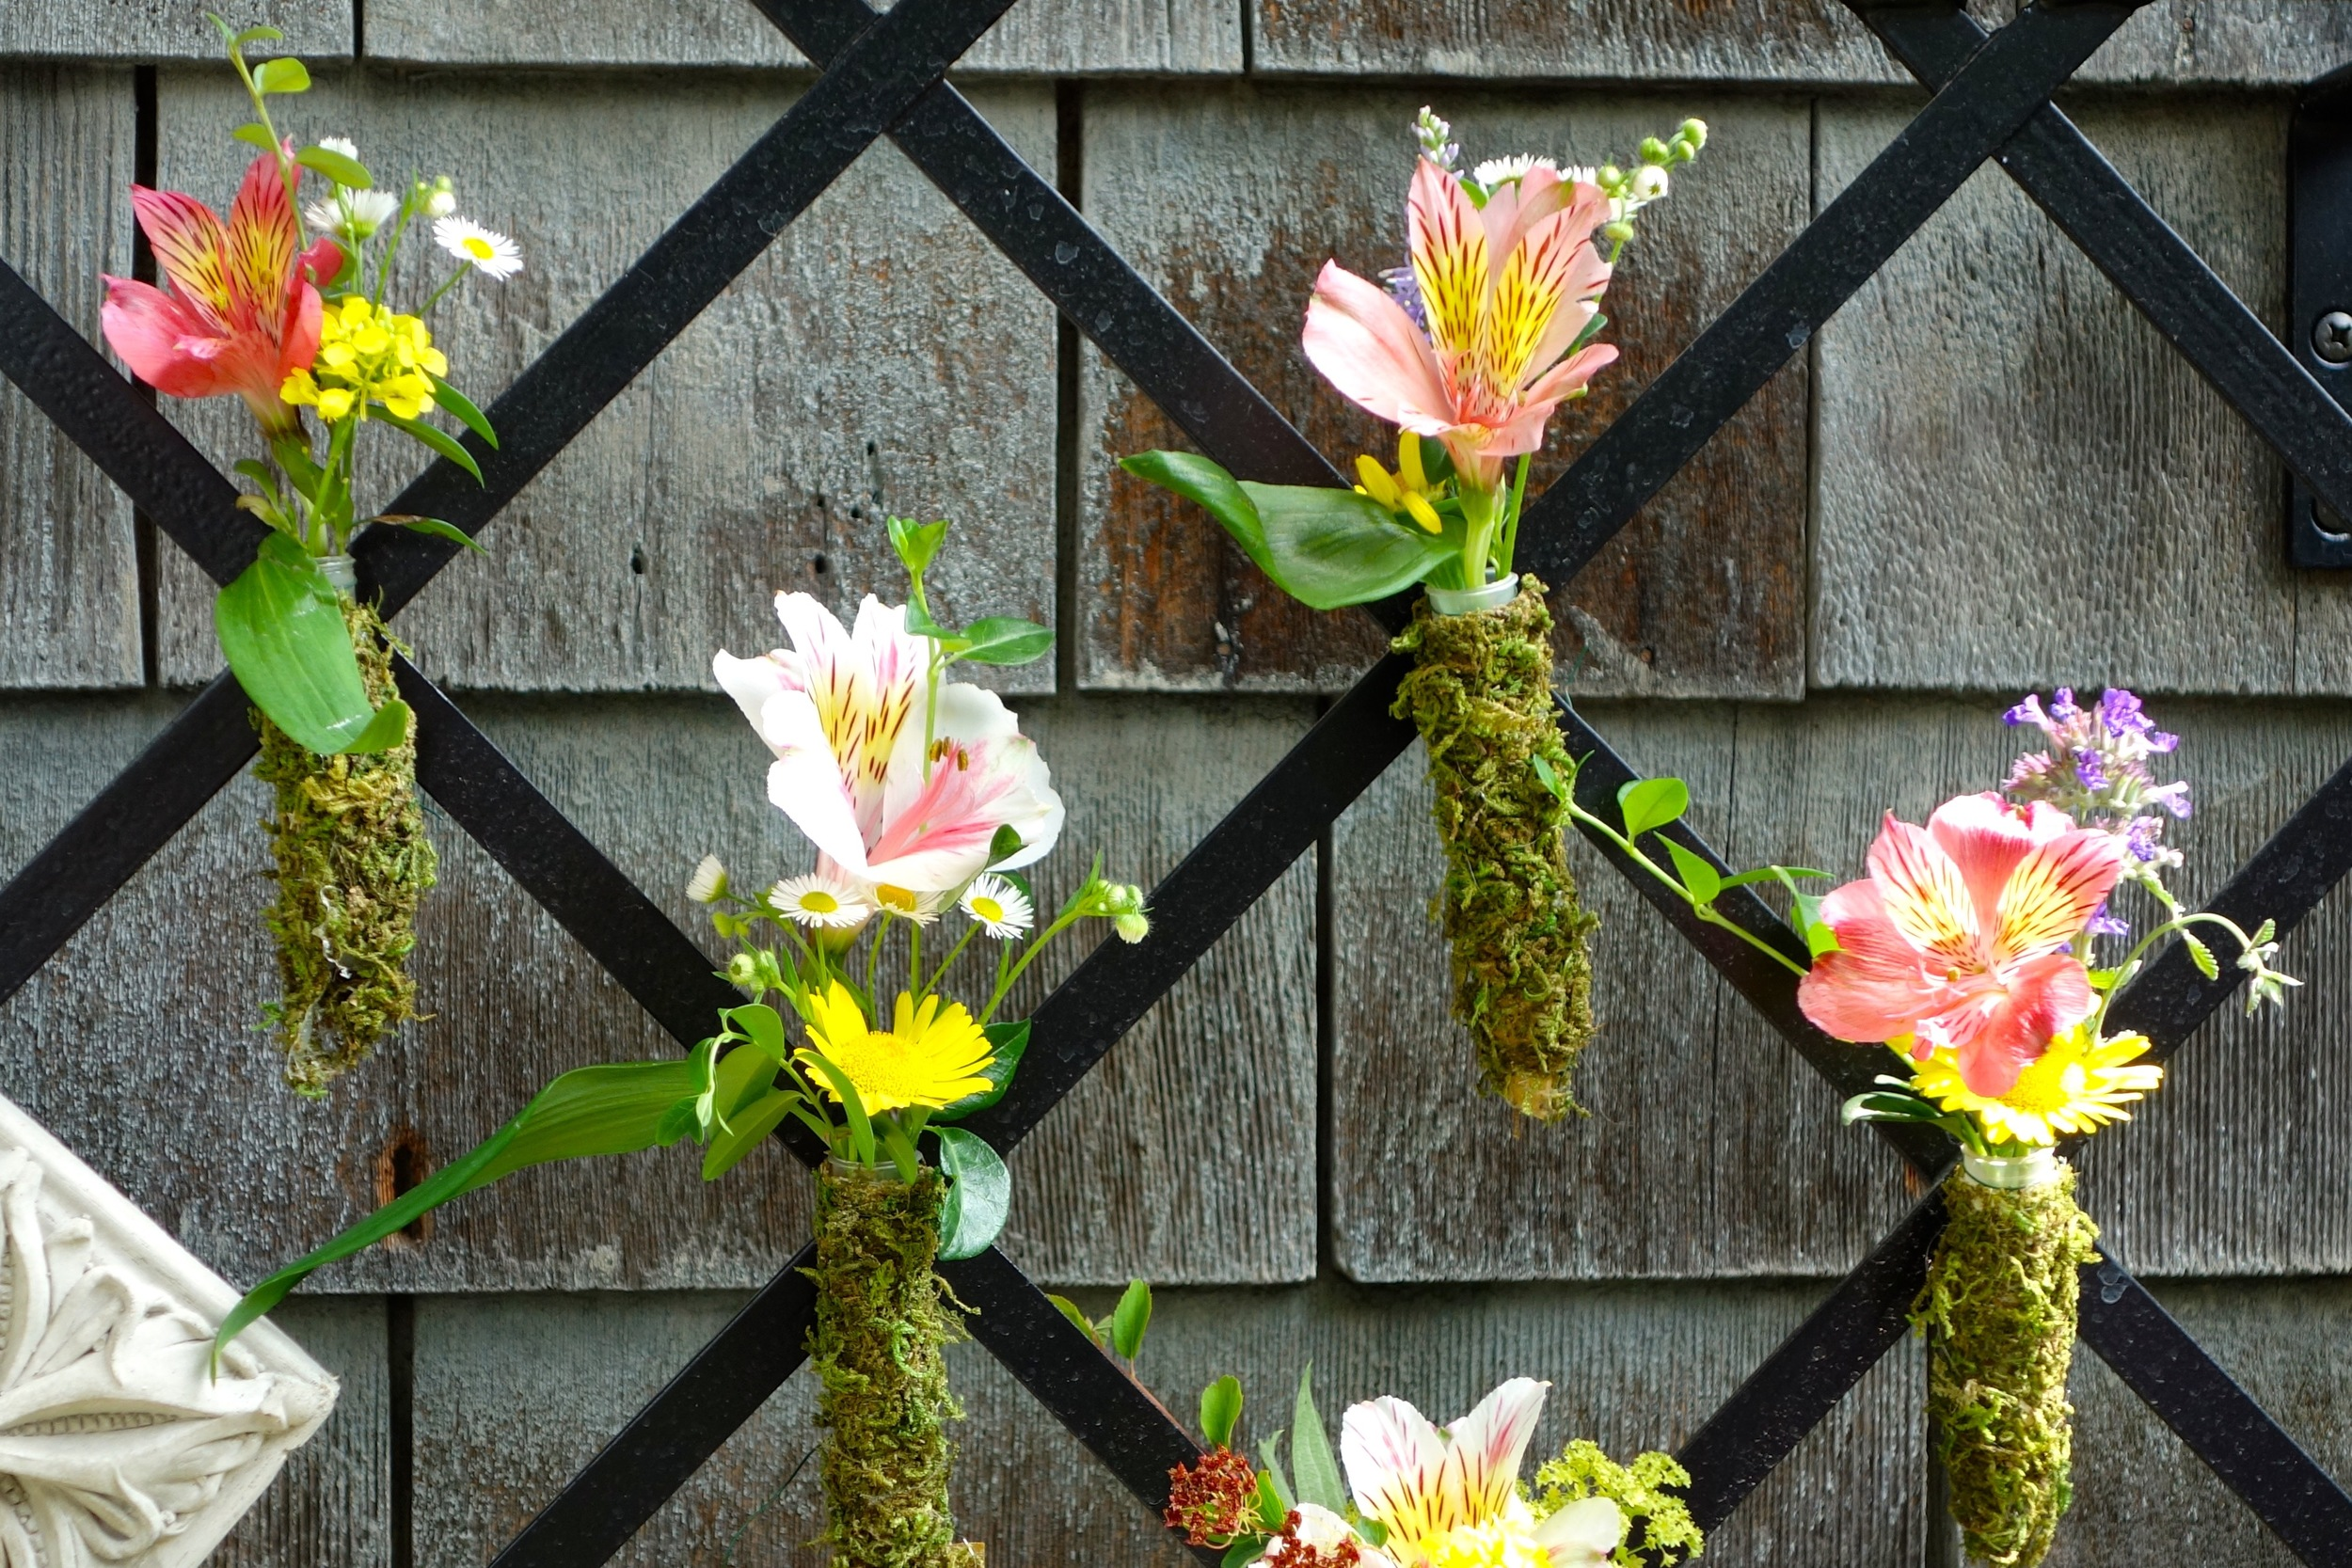 Mini bouquets including flowers from the garden adorn the trellis in the Belgian block garden.